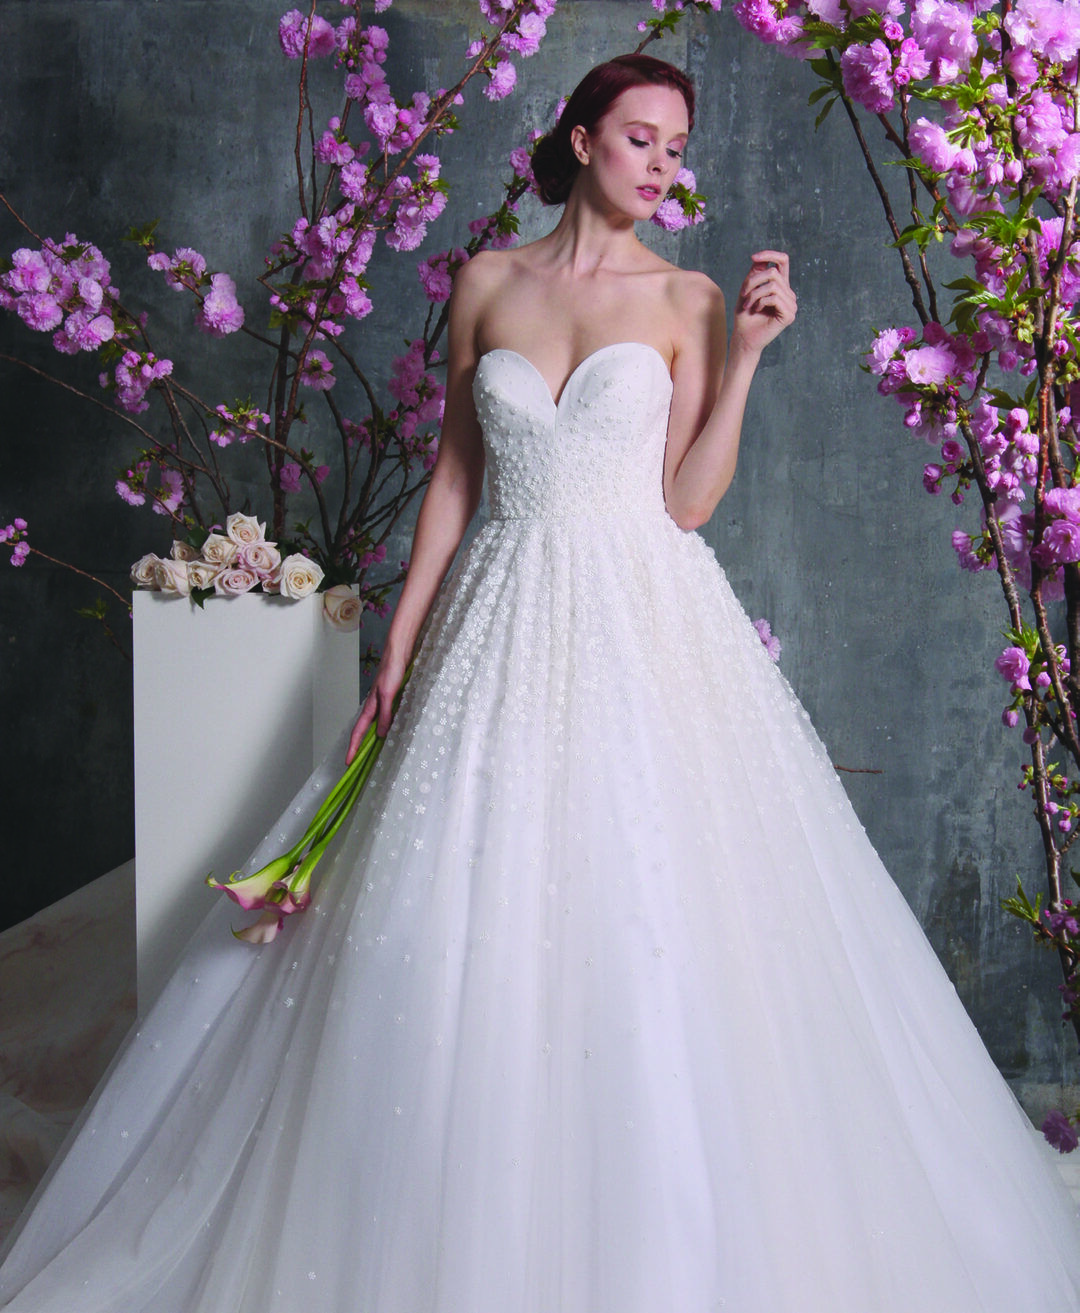 It S All About The Dress Issuu In 2020 Wedding Dresses Unique Gorgeous Wedding Dress Perfect Wedding Dress